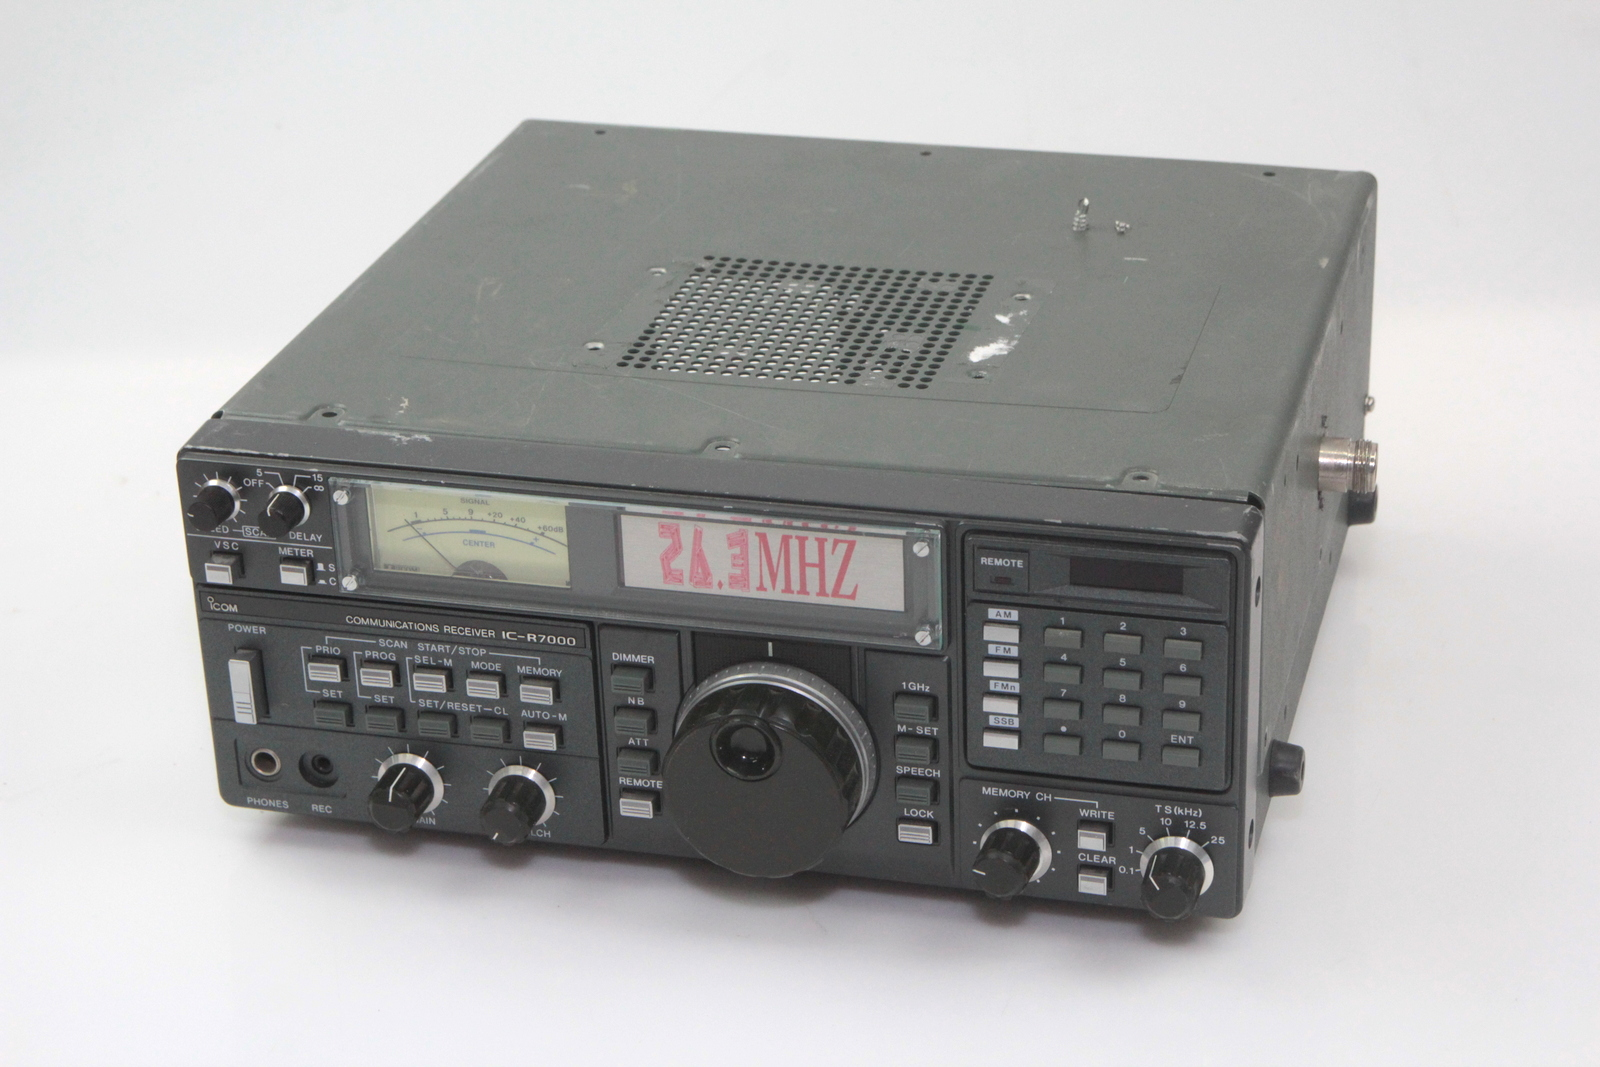 Details about Front Panel with Chassie For ICOM IC-R7000 Communications  Receiver